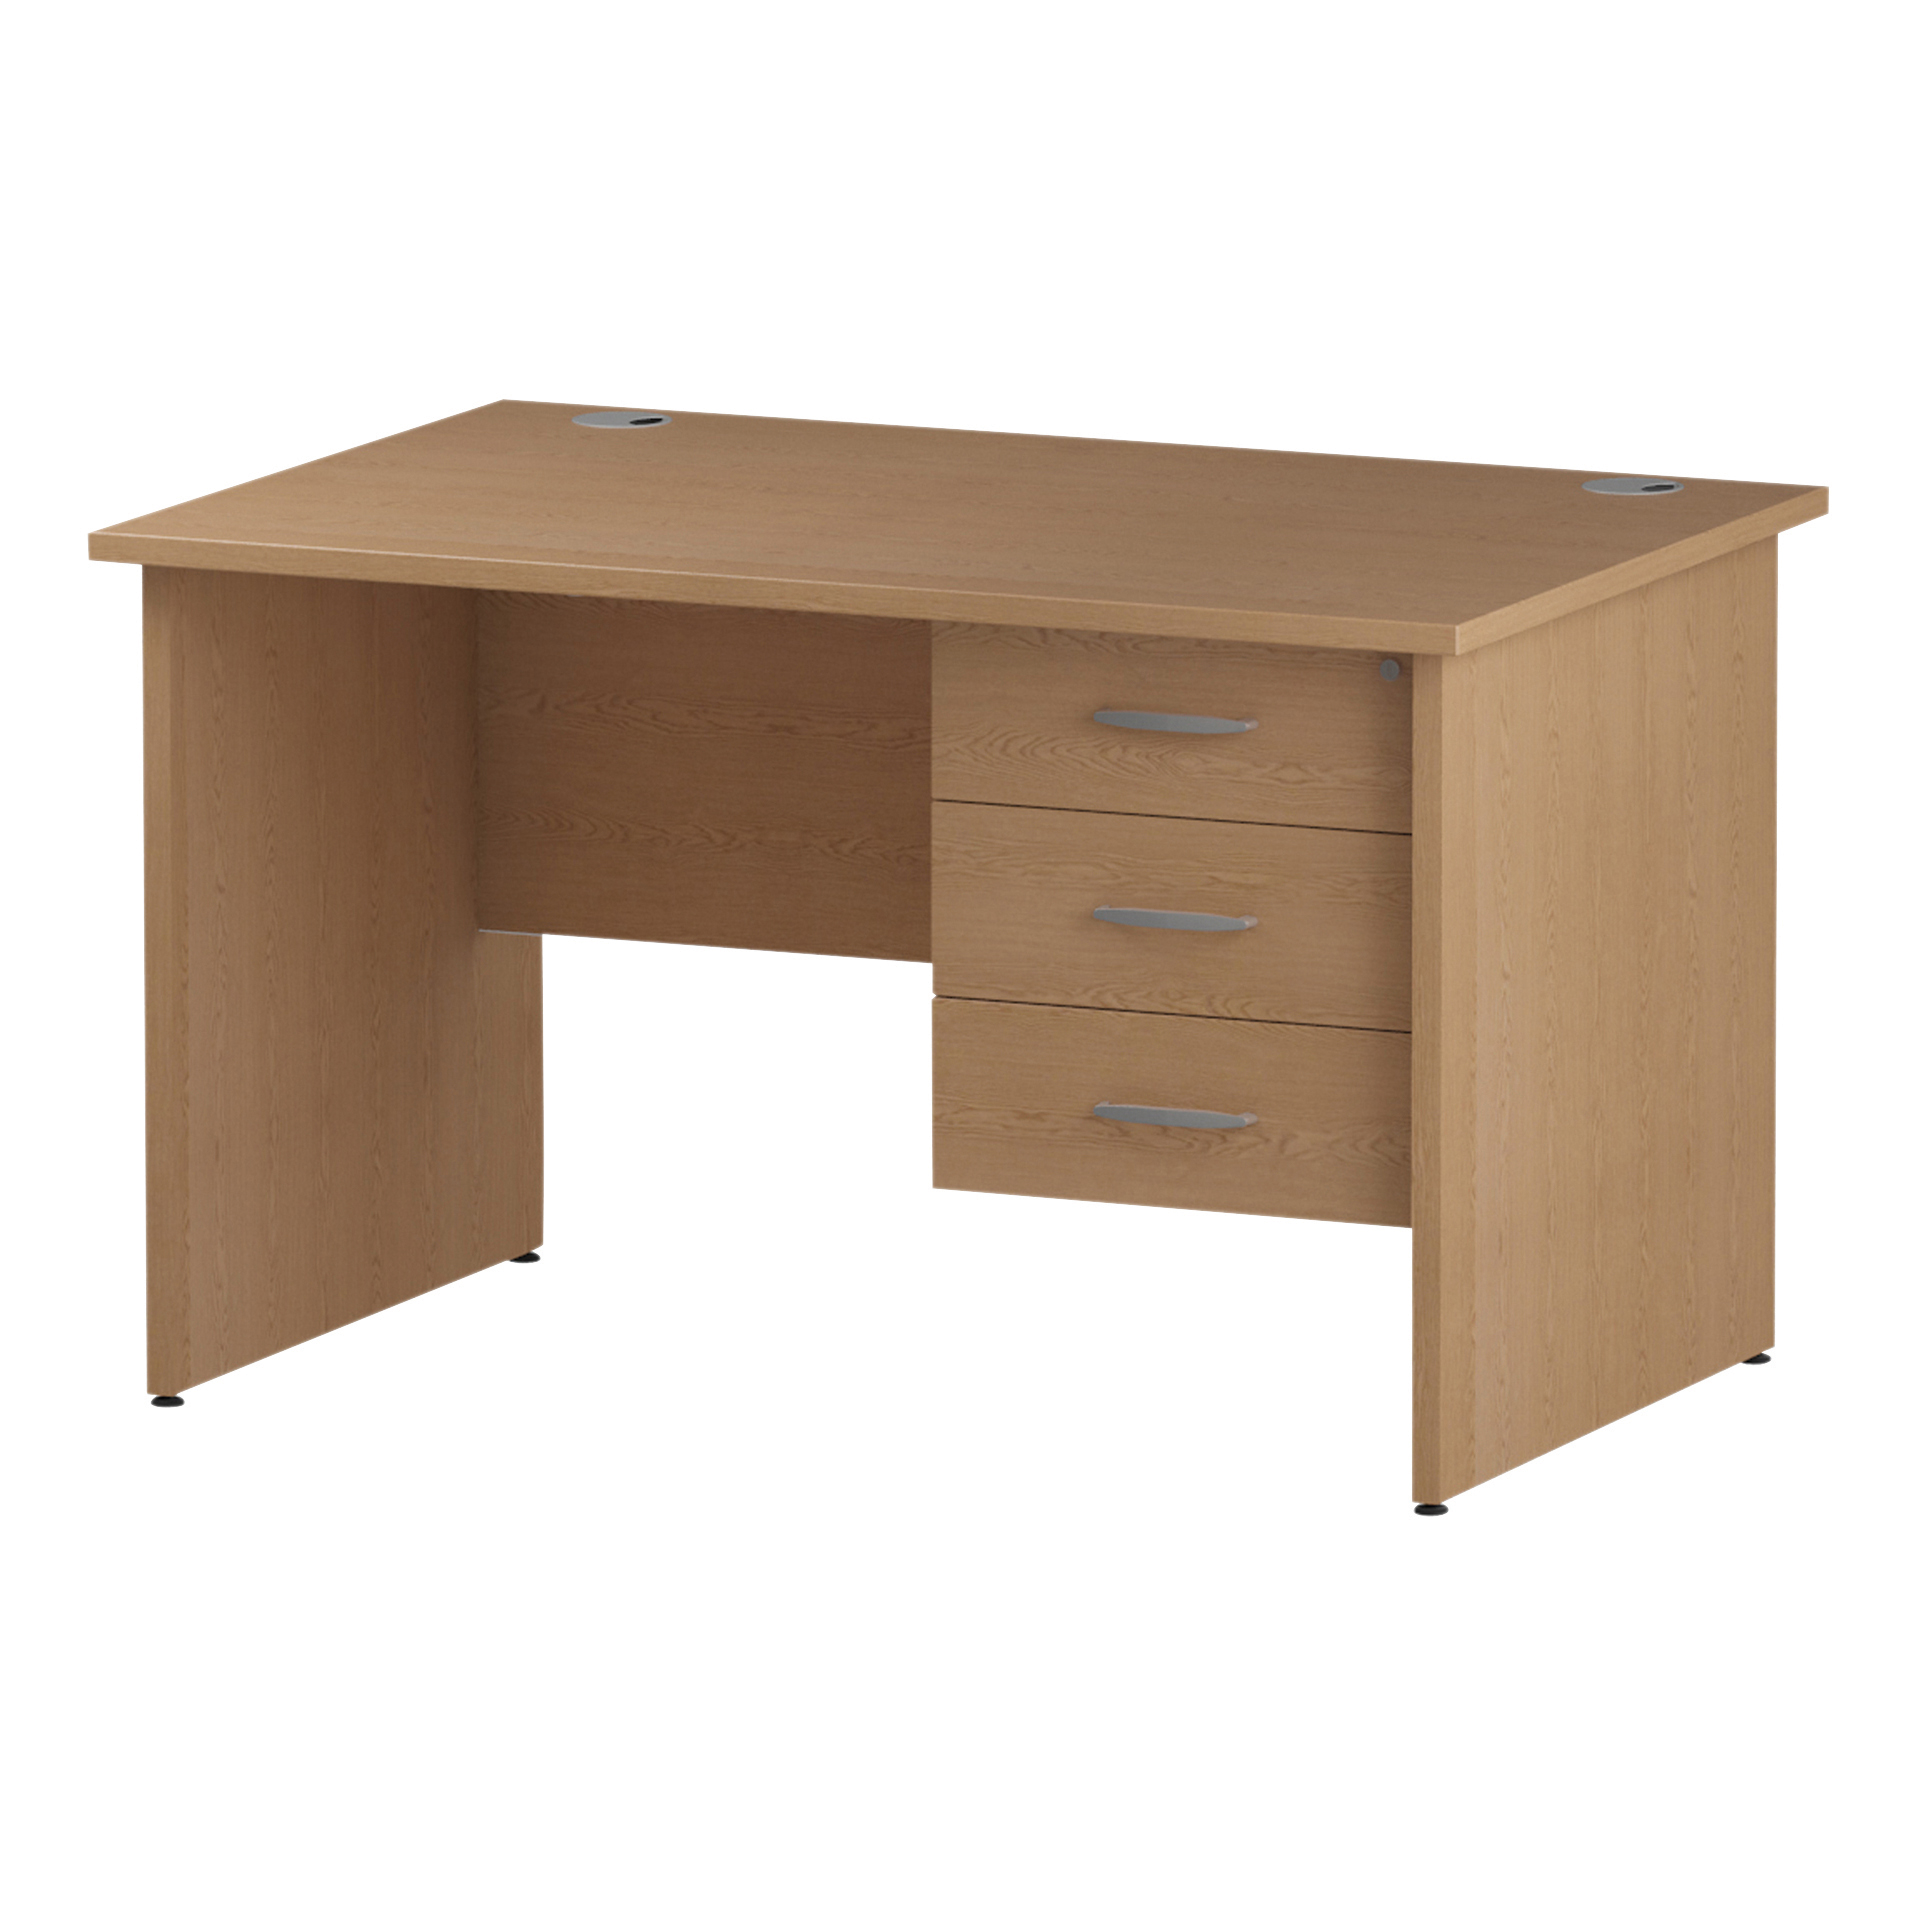 Trexus Rectangular Desk Panel End Leg 1200x800mm Fixed Pedestal 3 Drawers Oak Ref I002706